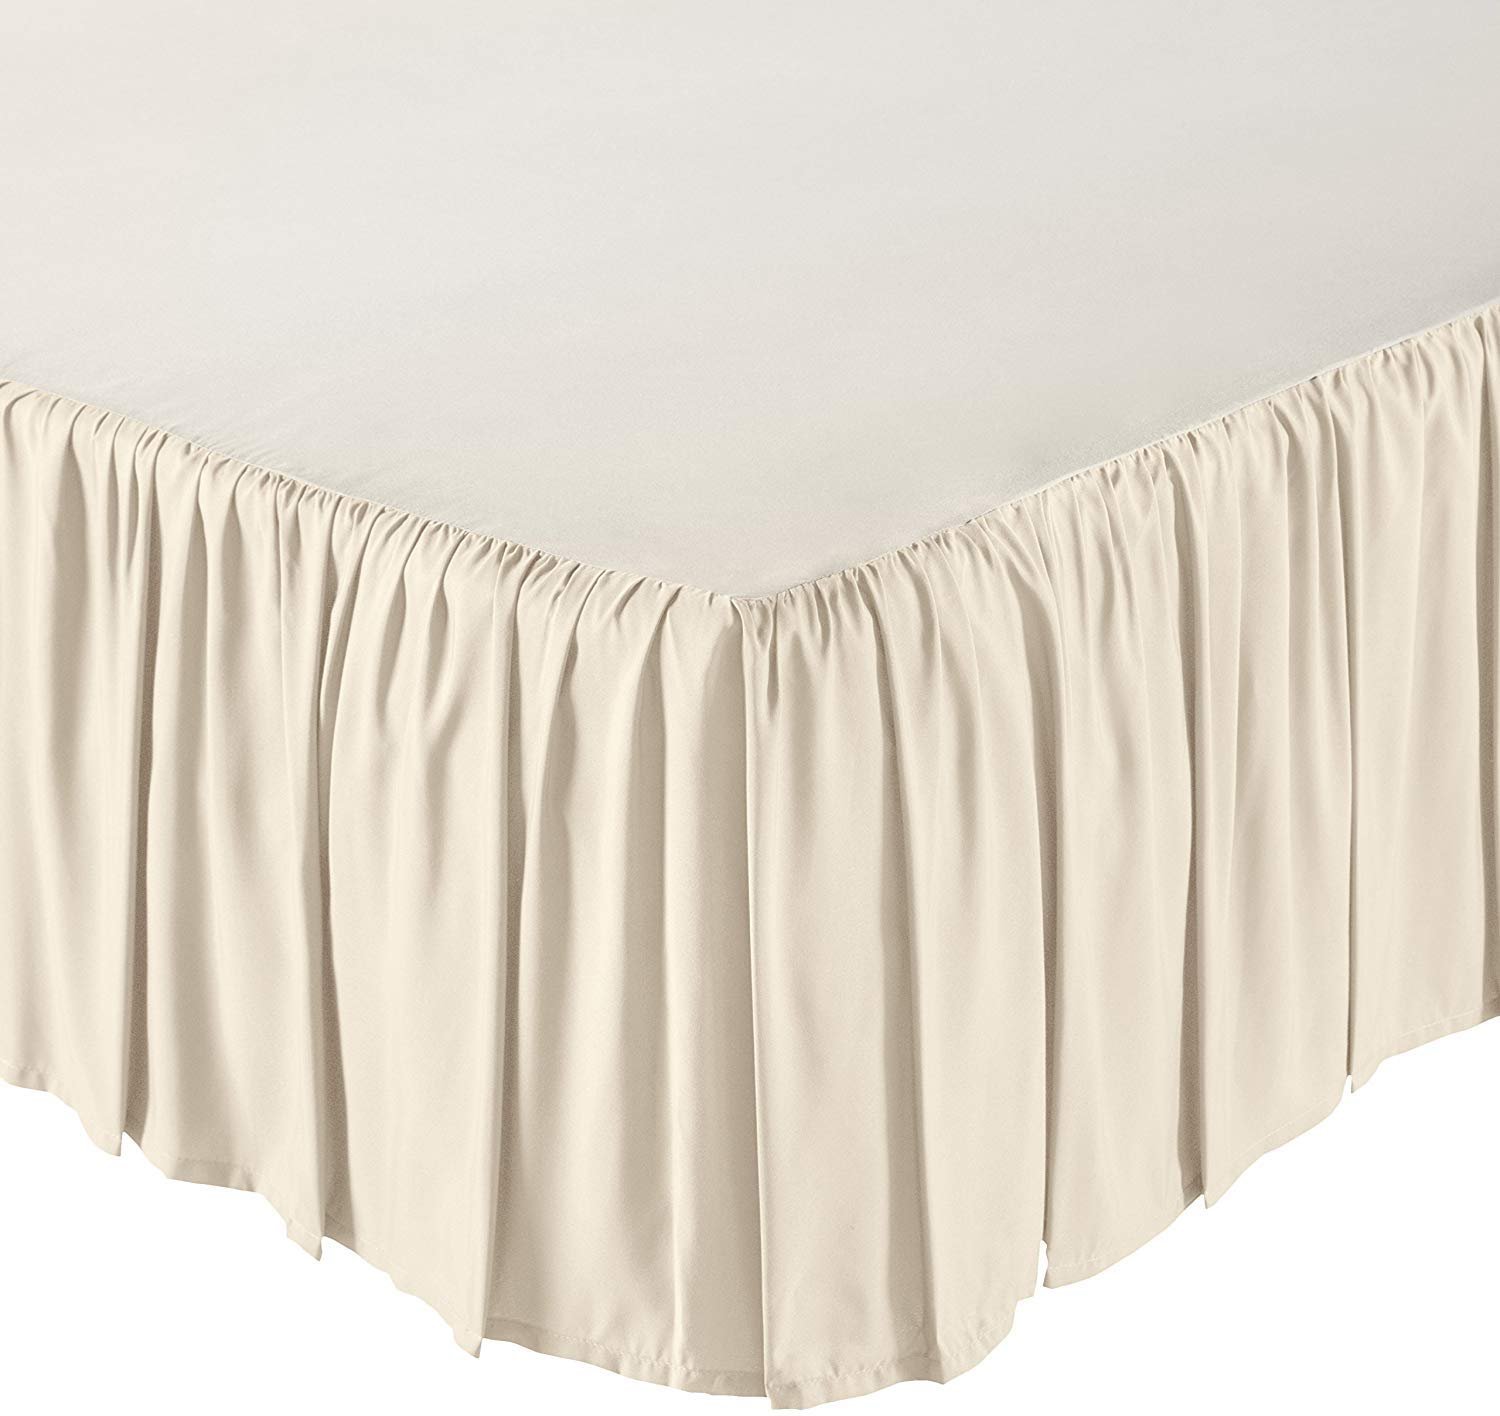 Mattress-Homes Ruffled Bed Skirt- 21 Inch Drop (Queen, Ivory) Dust Ruffle with Platform (Available in All Bed Sizes and Colors) by Mattress-Homes